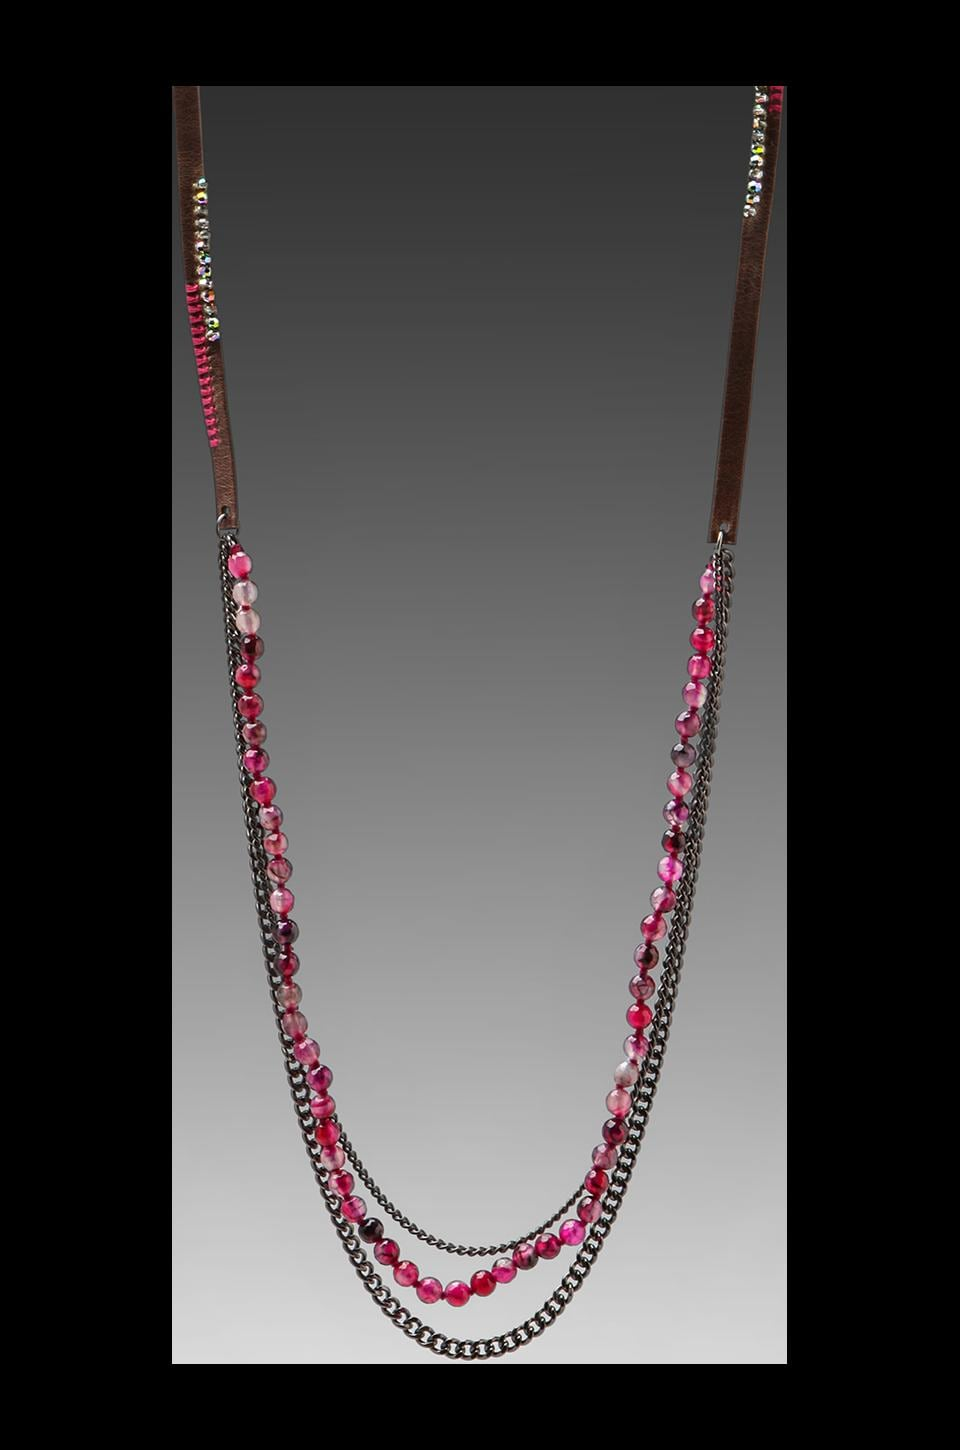 CHAN LUU Long Chain Bead Necklace in Black Fuchsia Agate